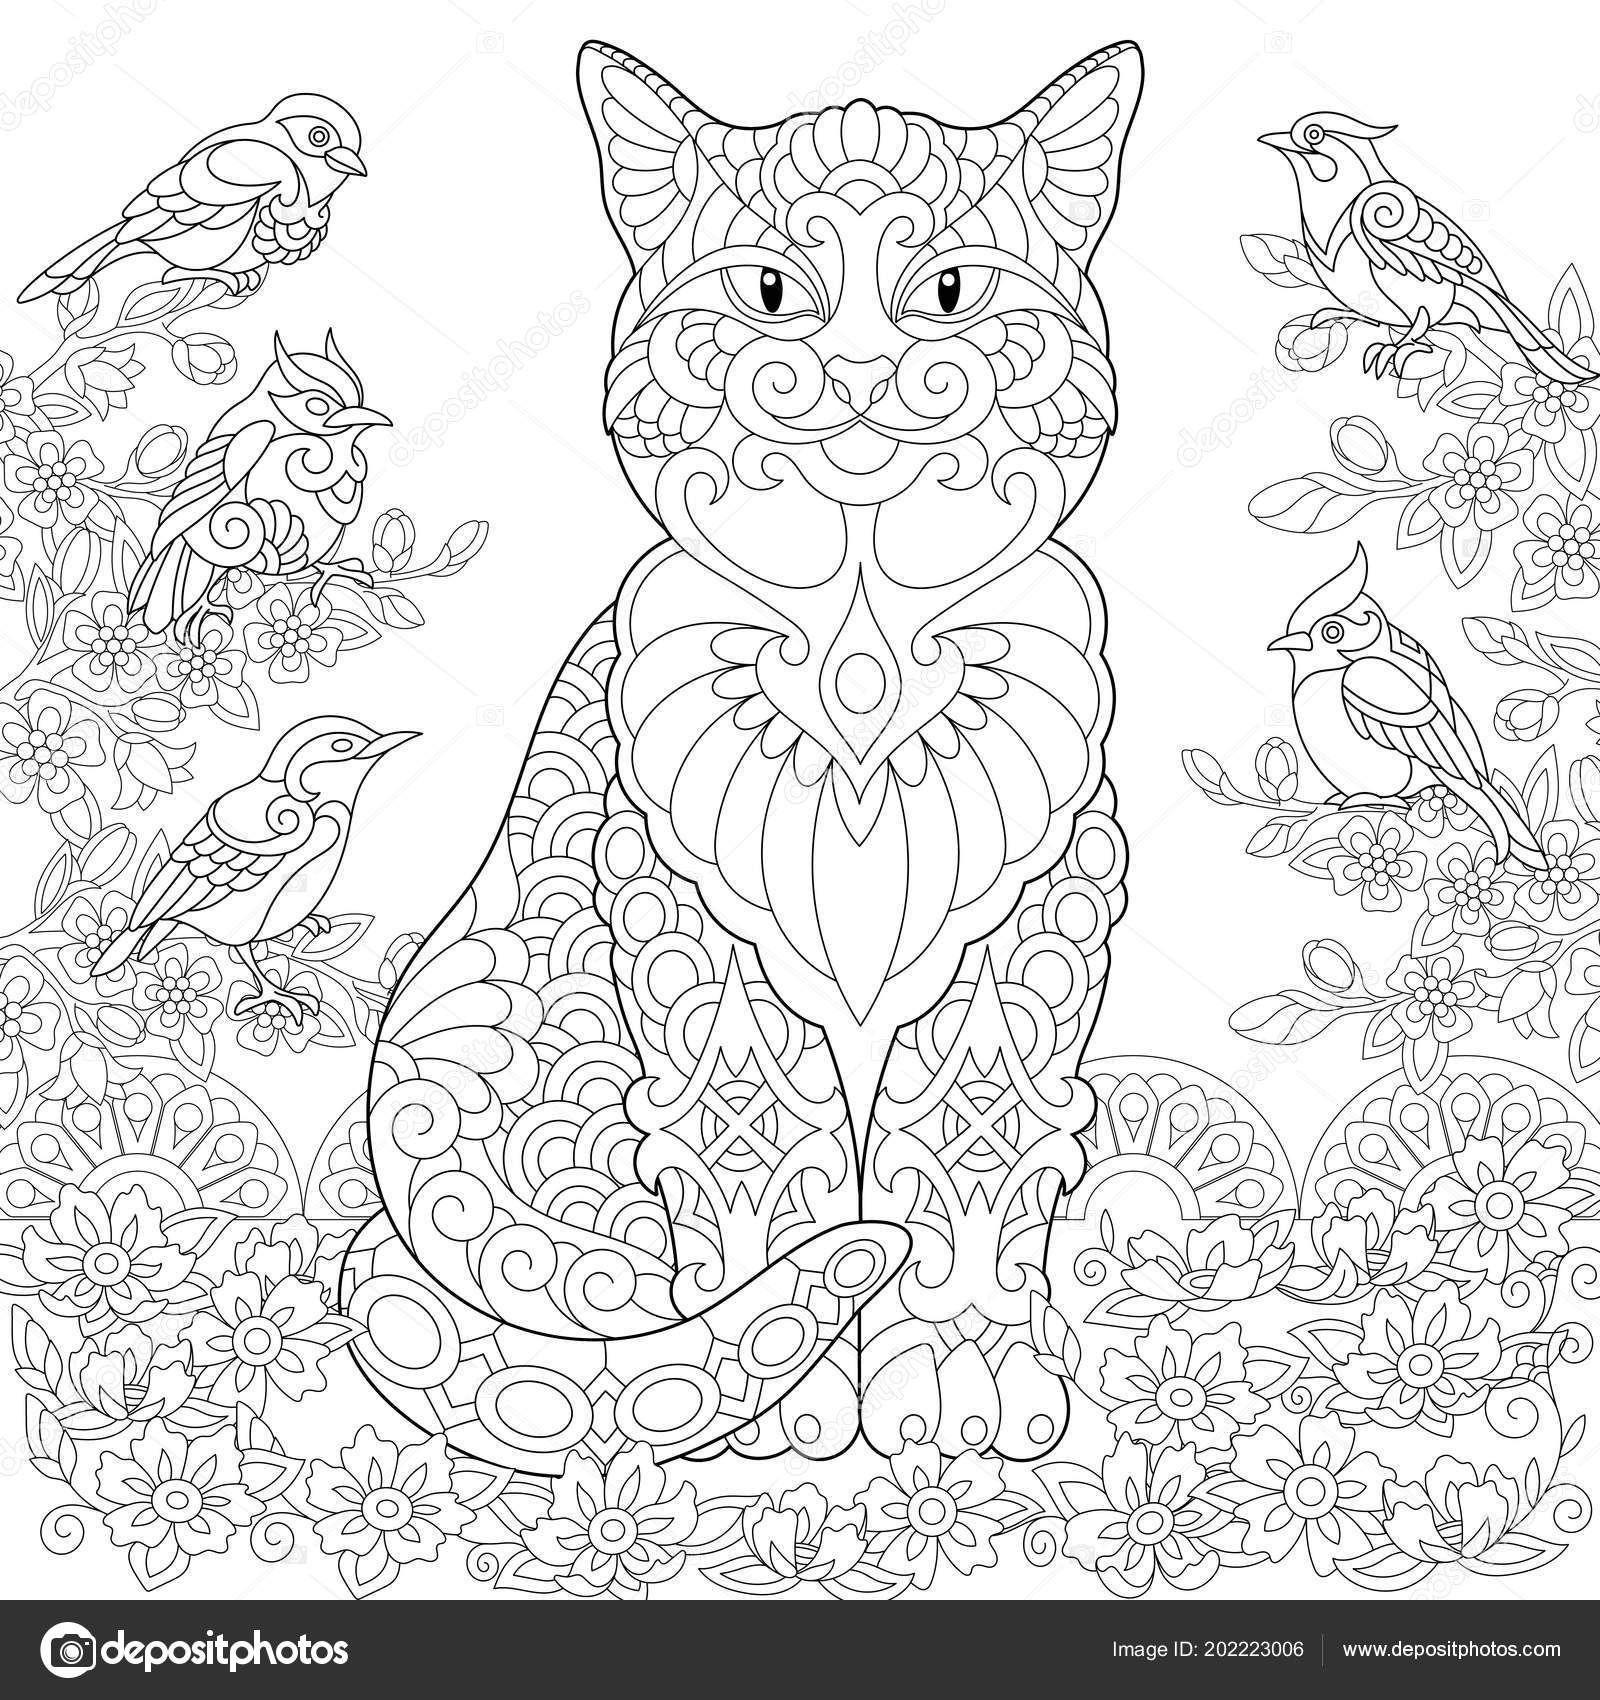 Cat Birds Garden Coloring Page Colouring Picture Book